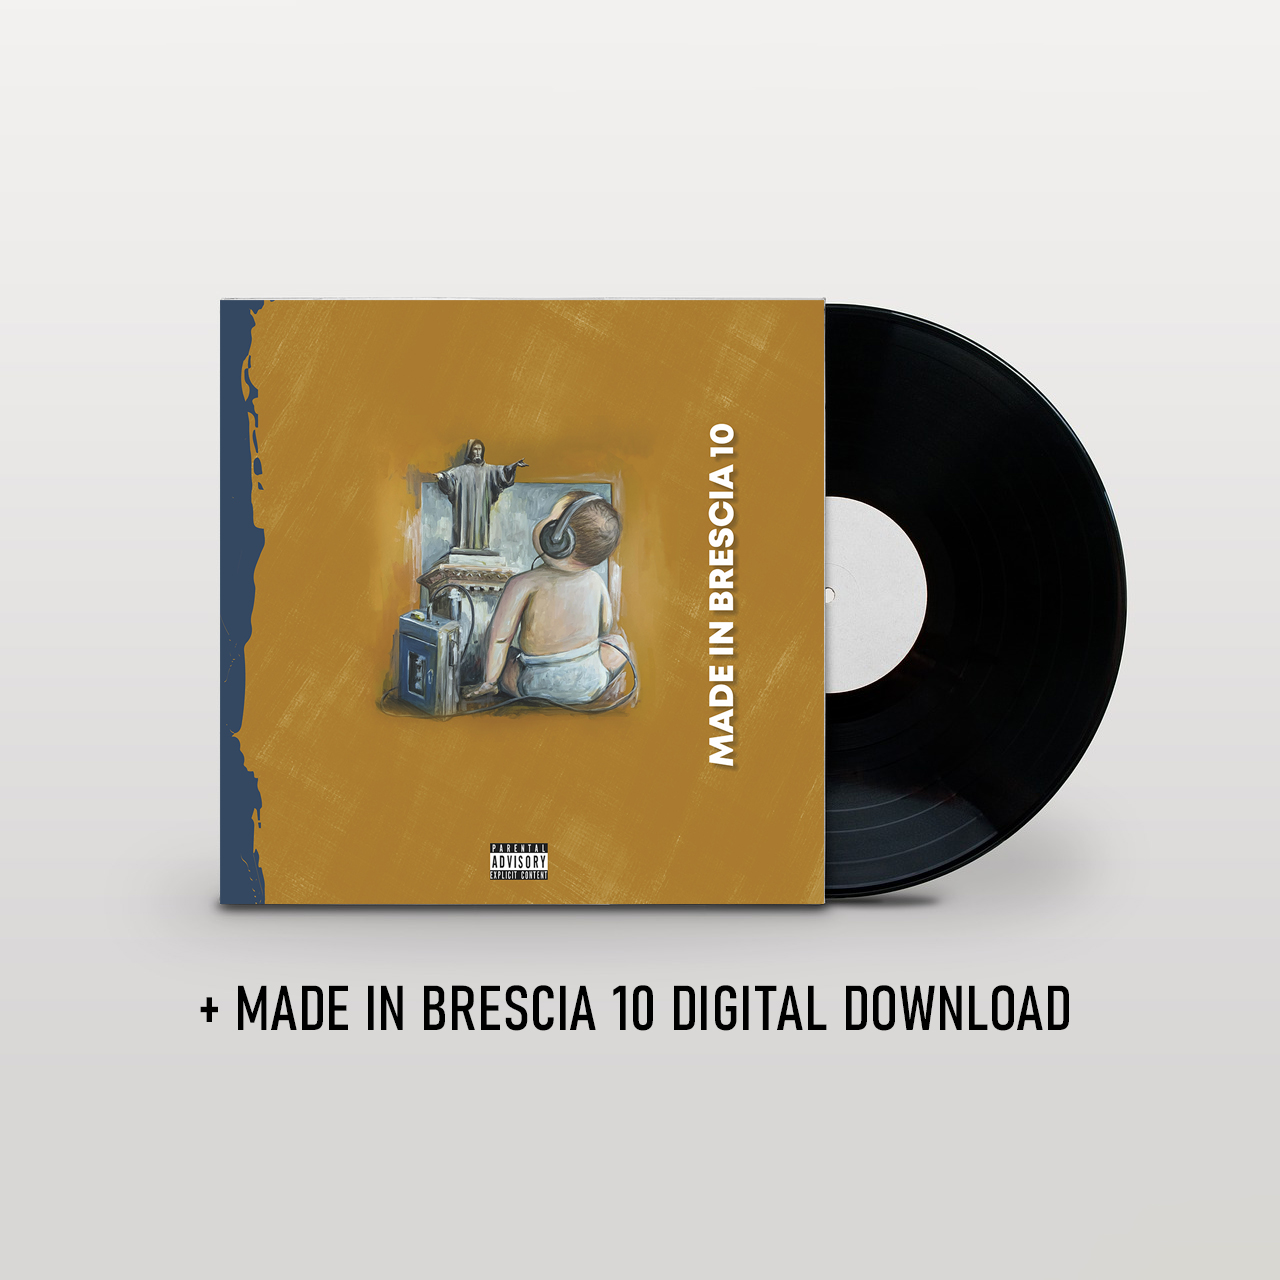 Made in Brescia 10 Vinile + Digital Download